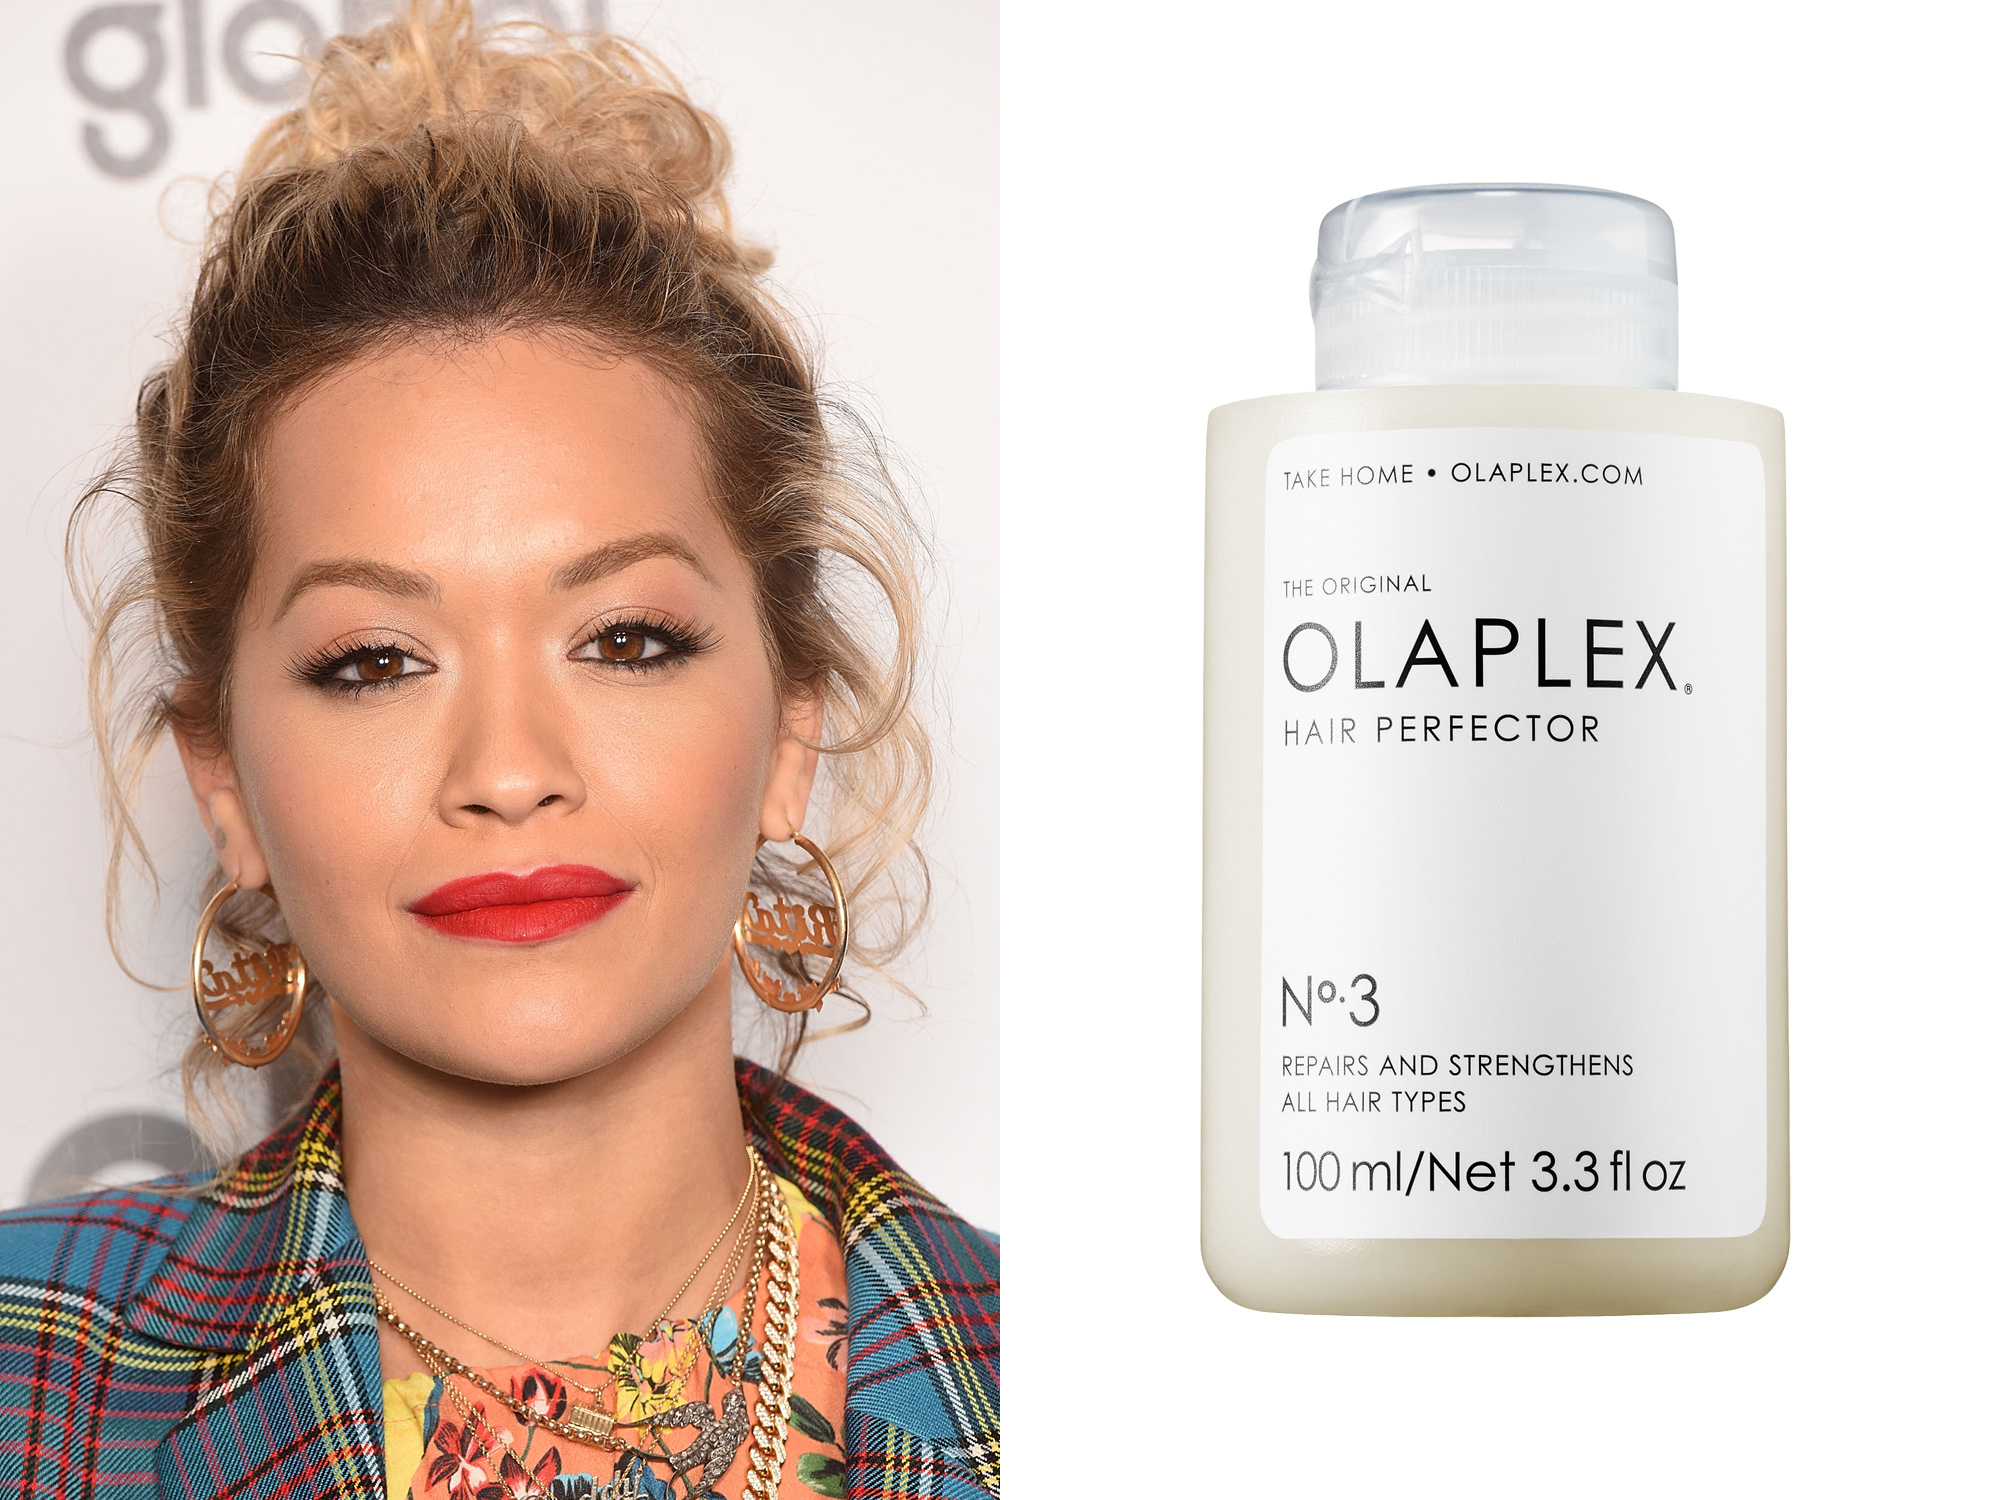 Rita Ora: Olaplex Hair Perfector No. 3